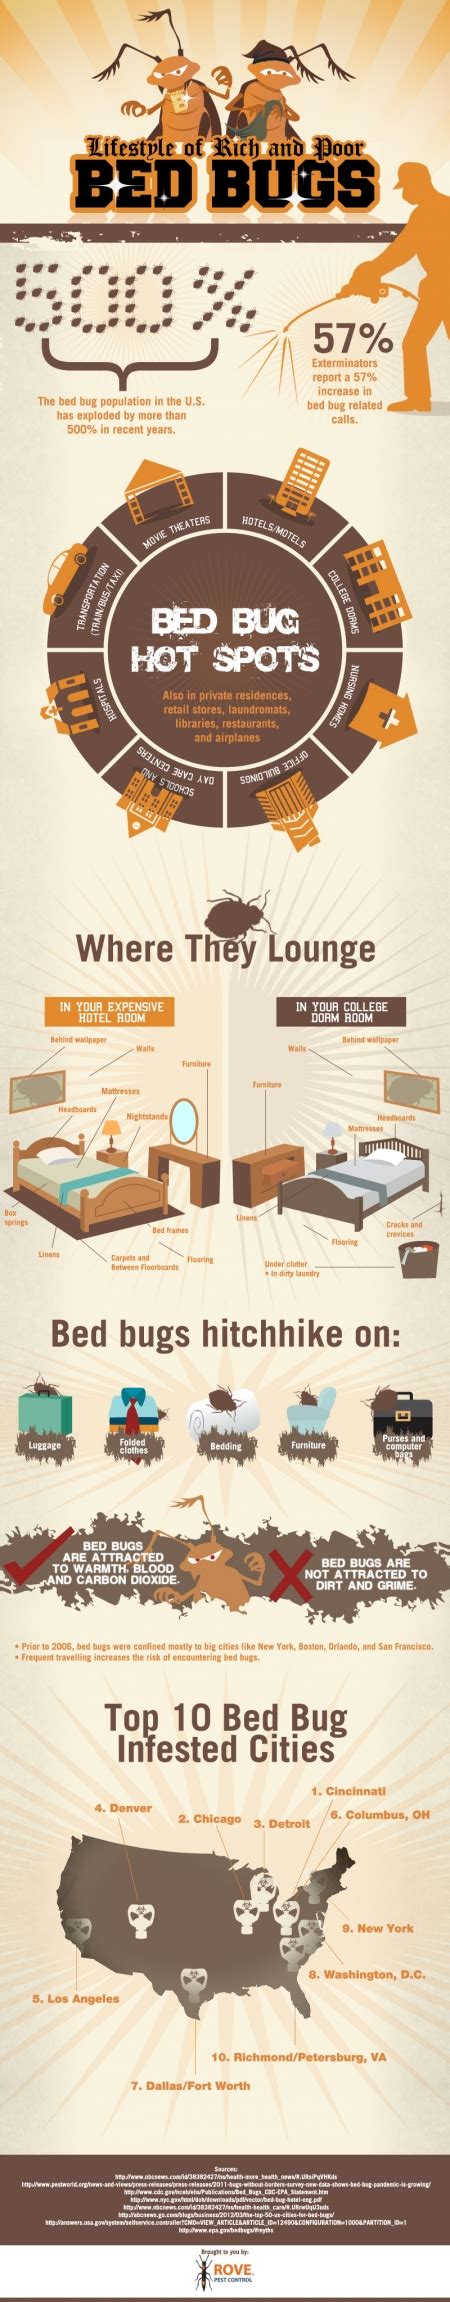 bed bugs movie theater bed bug alert how are bed bugs getting into homes nest